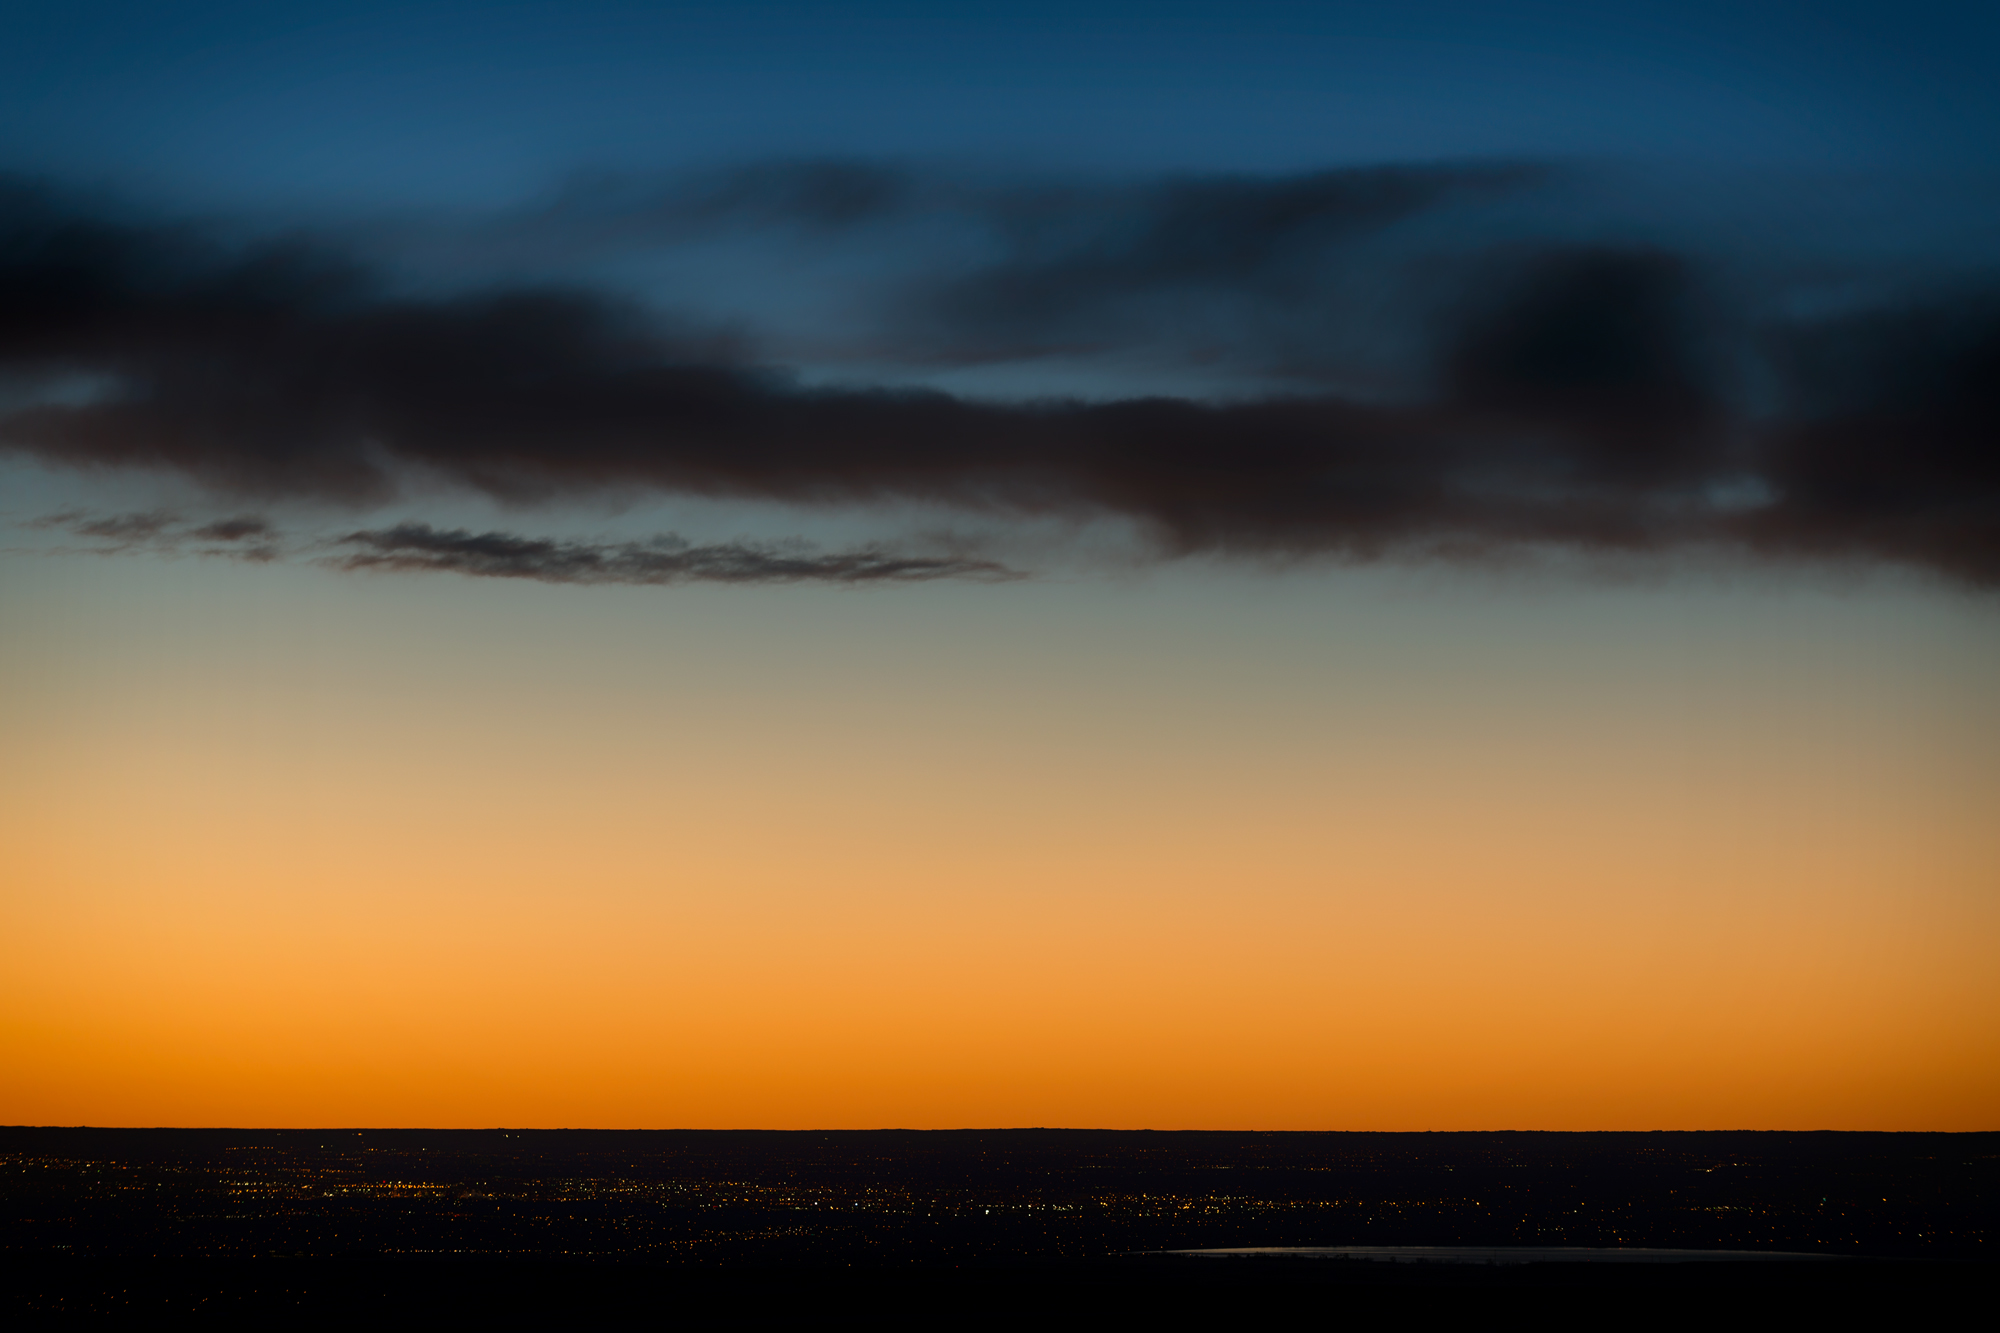 Approaching Dawn, Urban Horizon. Boulder, Colorado, 2014